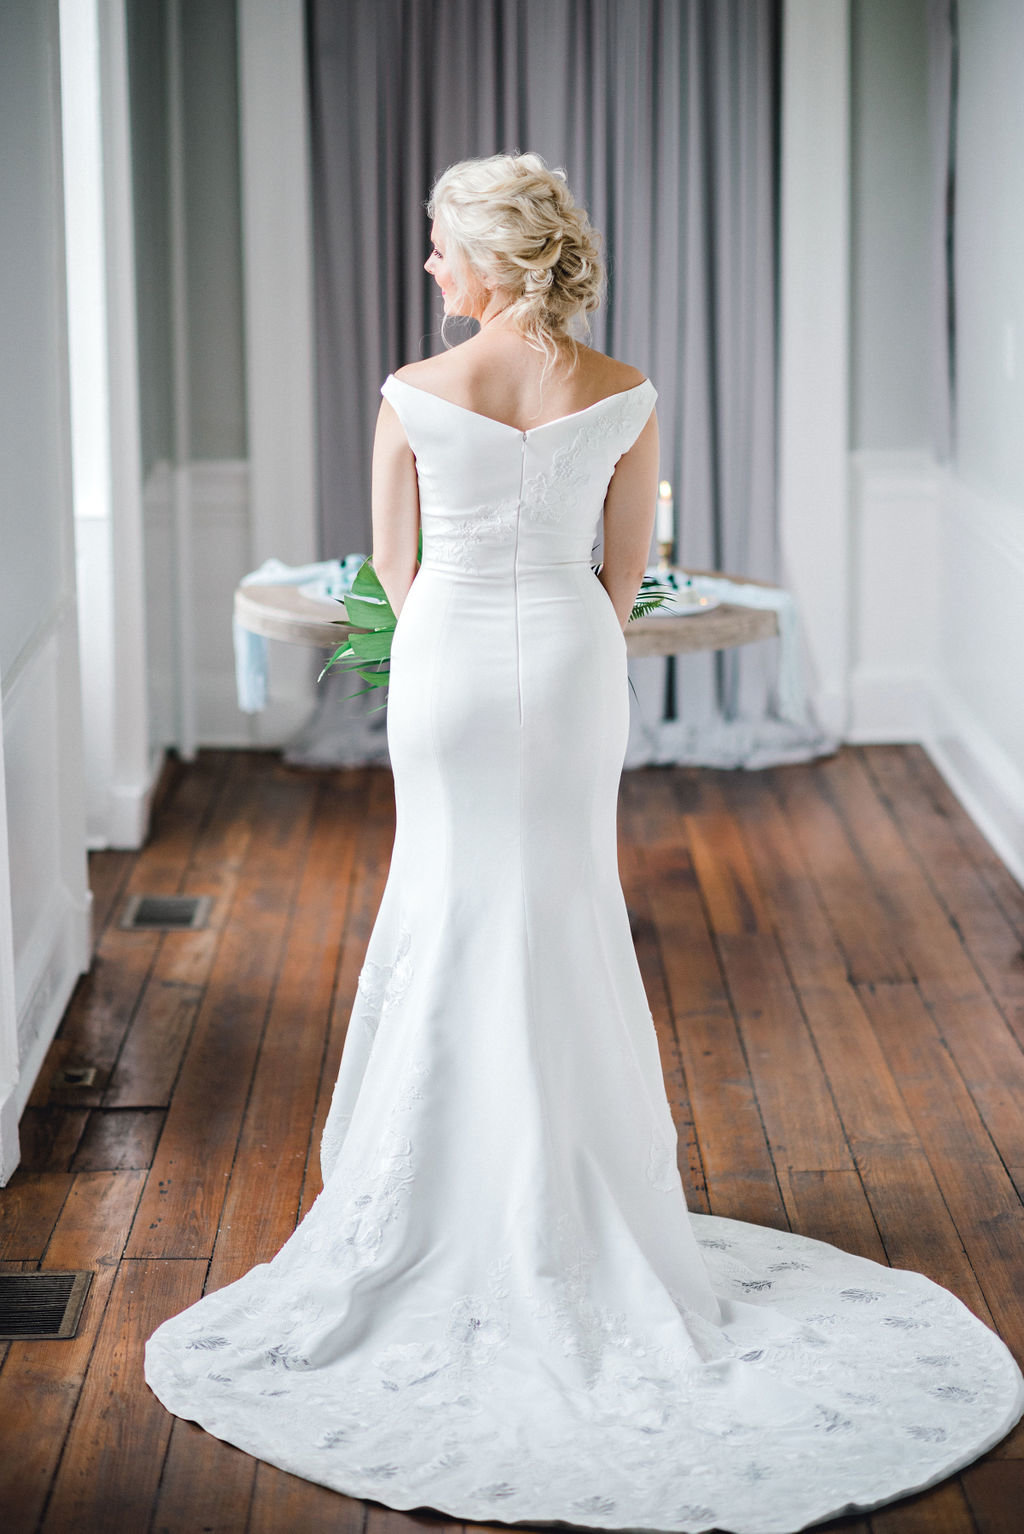 Miraz Willinger Bridal Gown Portraits Gadsden House Charlston